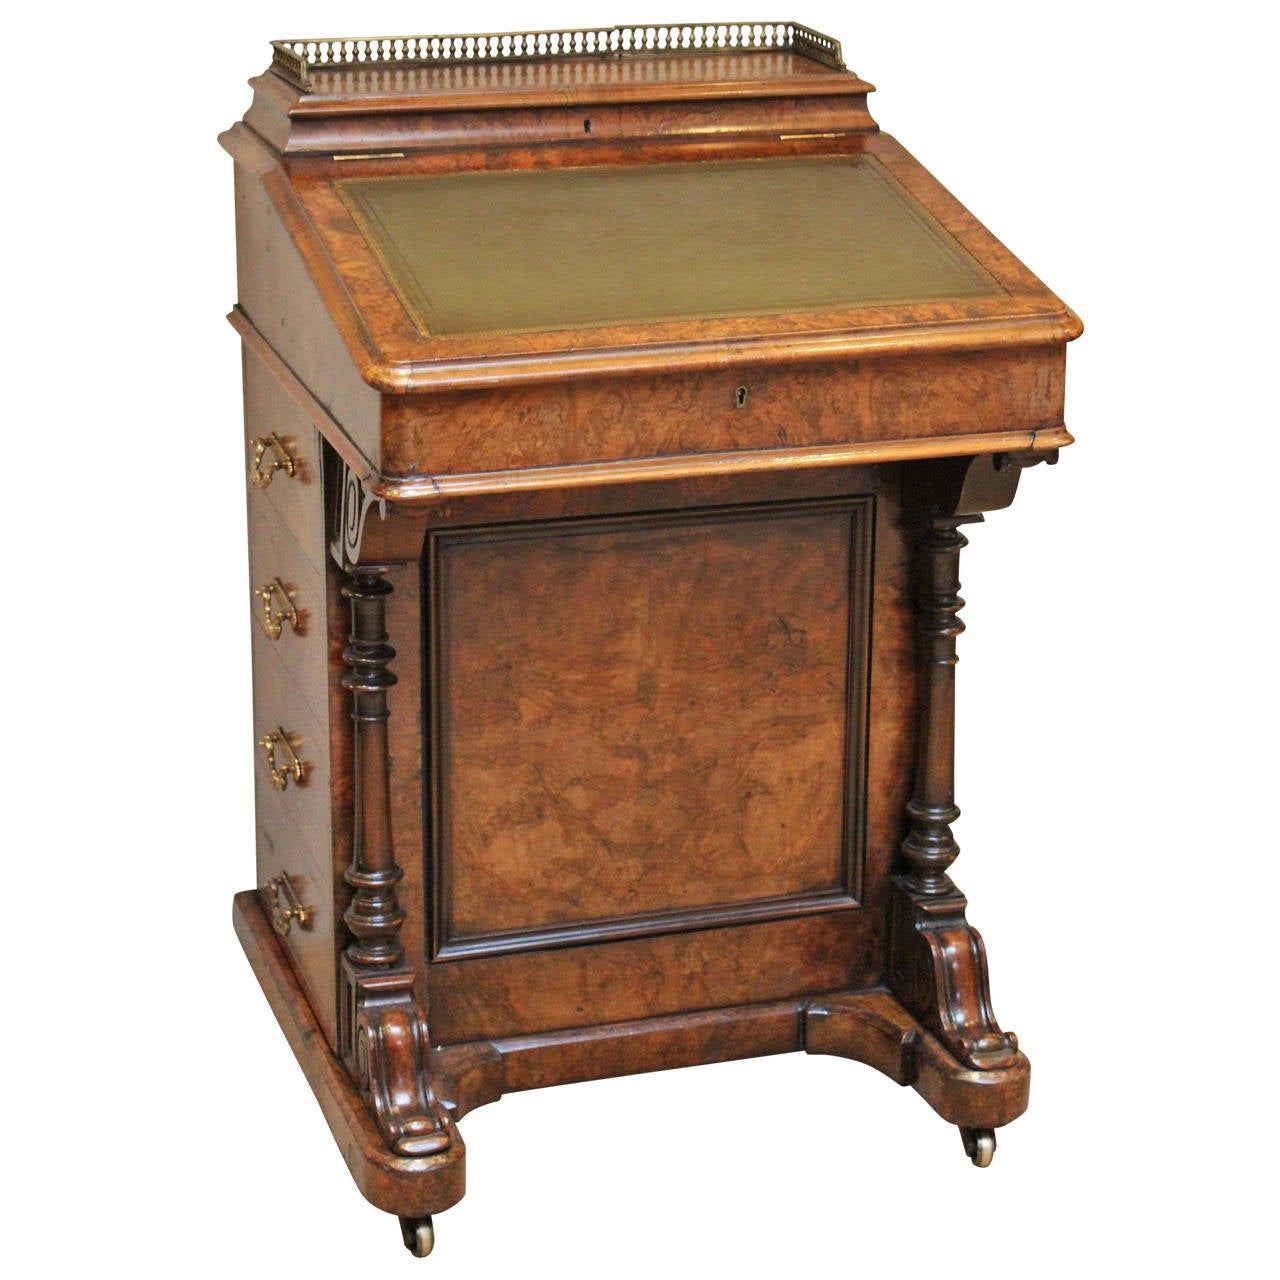 Victorian Burr Walnut Davenport Desk 1 - Victorian Burr Walnut Davenport Desk At 1stdibs